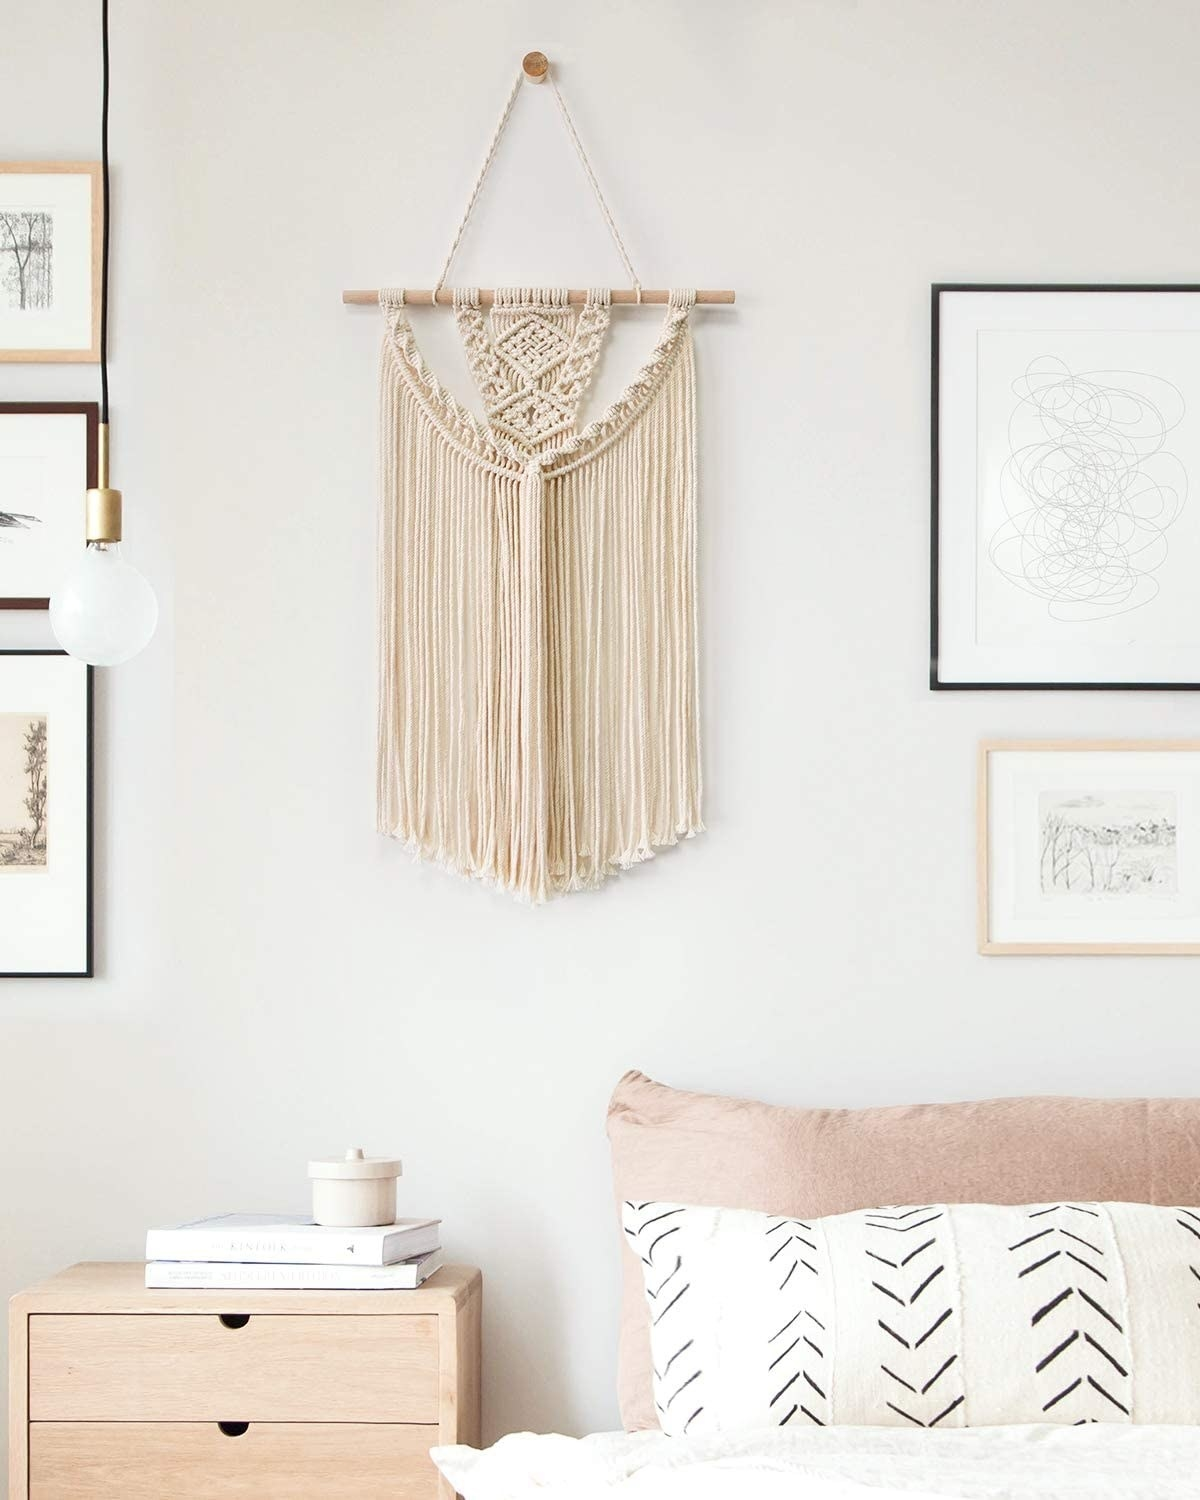 a hanging macrame wall piece in a bedroom